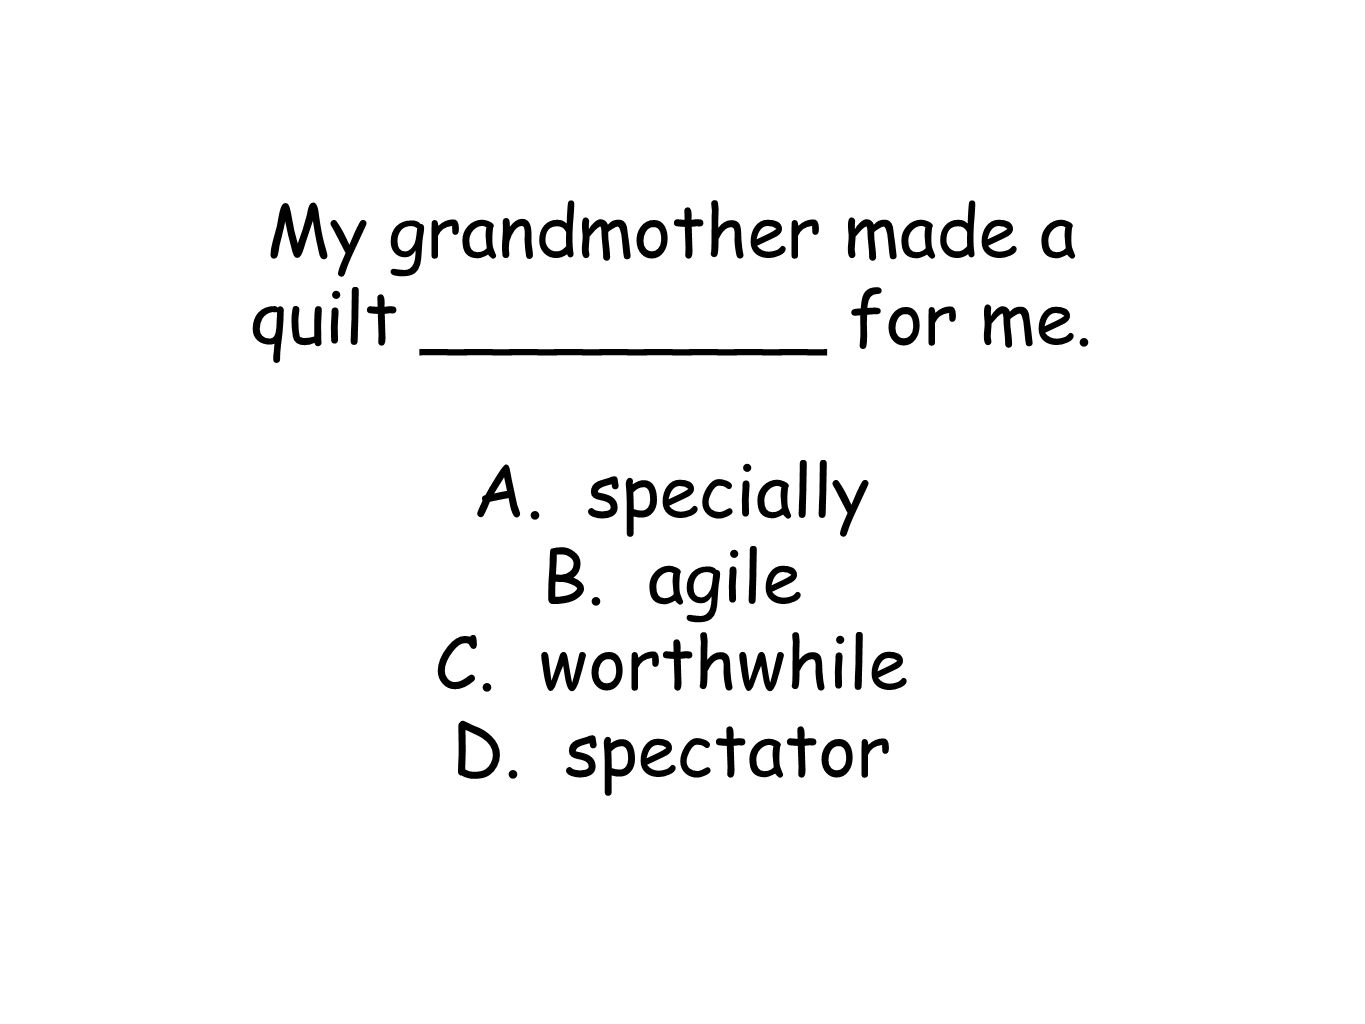 My grandmother made a quilt _________ for me. A. specially B. agile C. worthwhile D. spectator